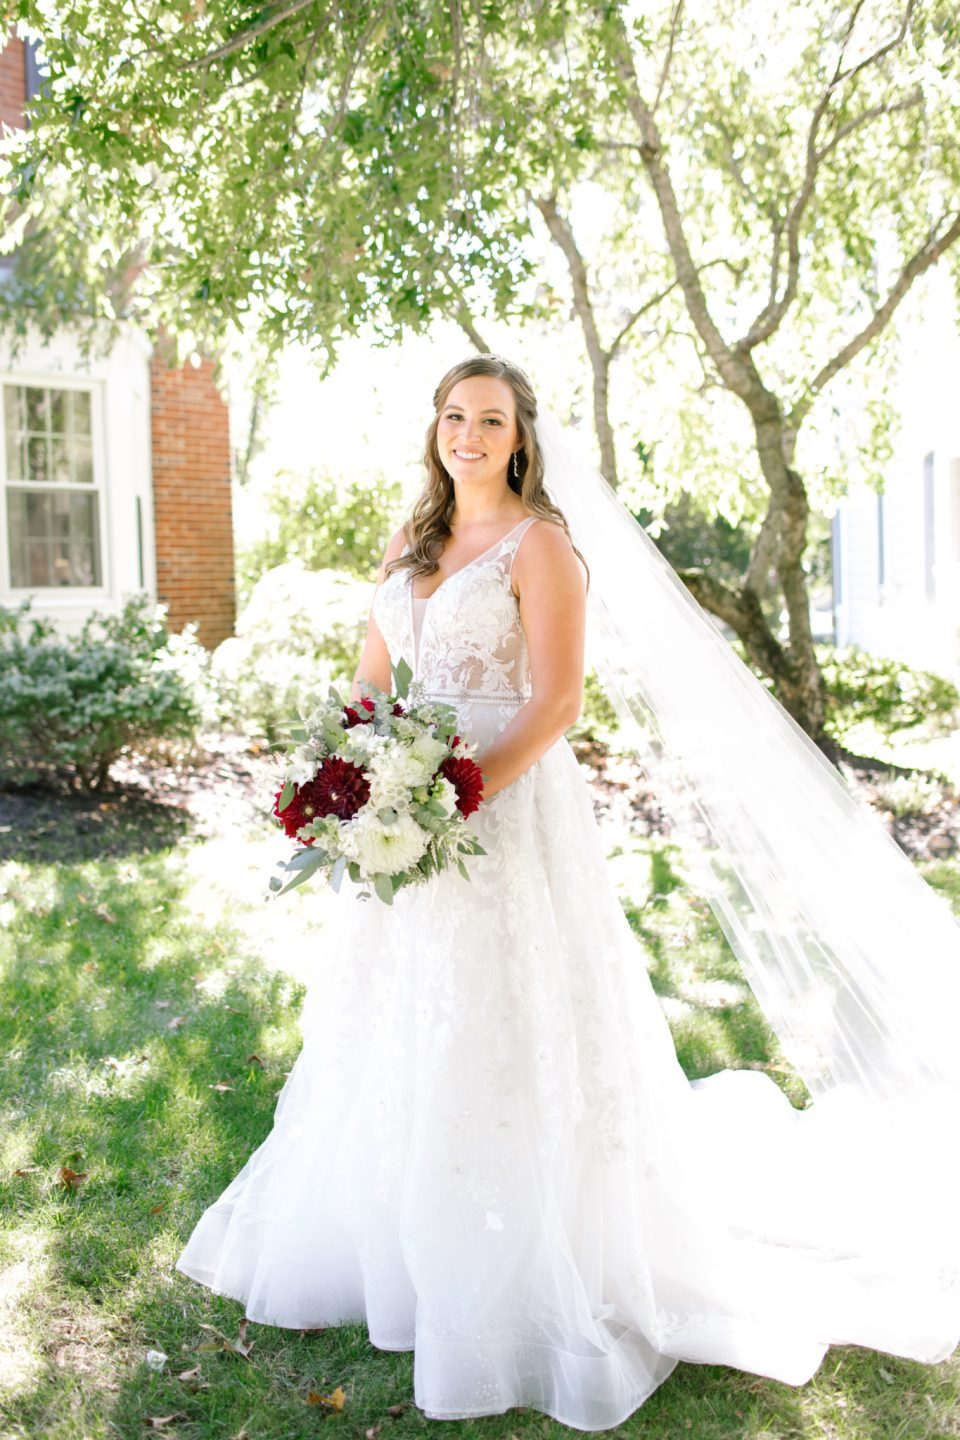 New Jersey wedding day portraits of the bride by Ashley Mac Photographs